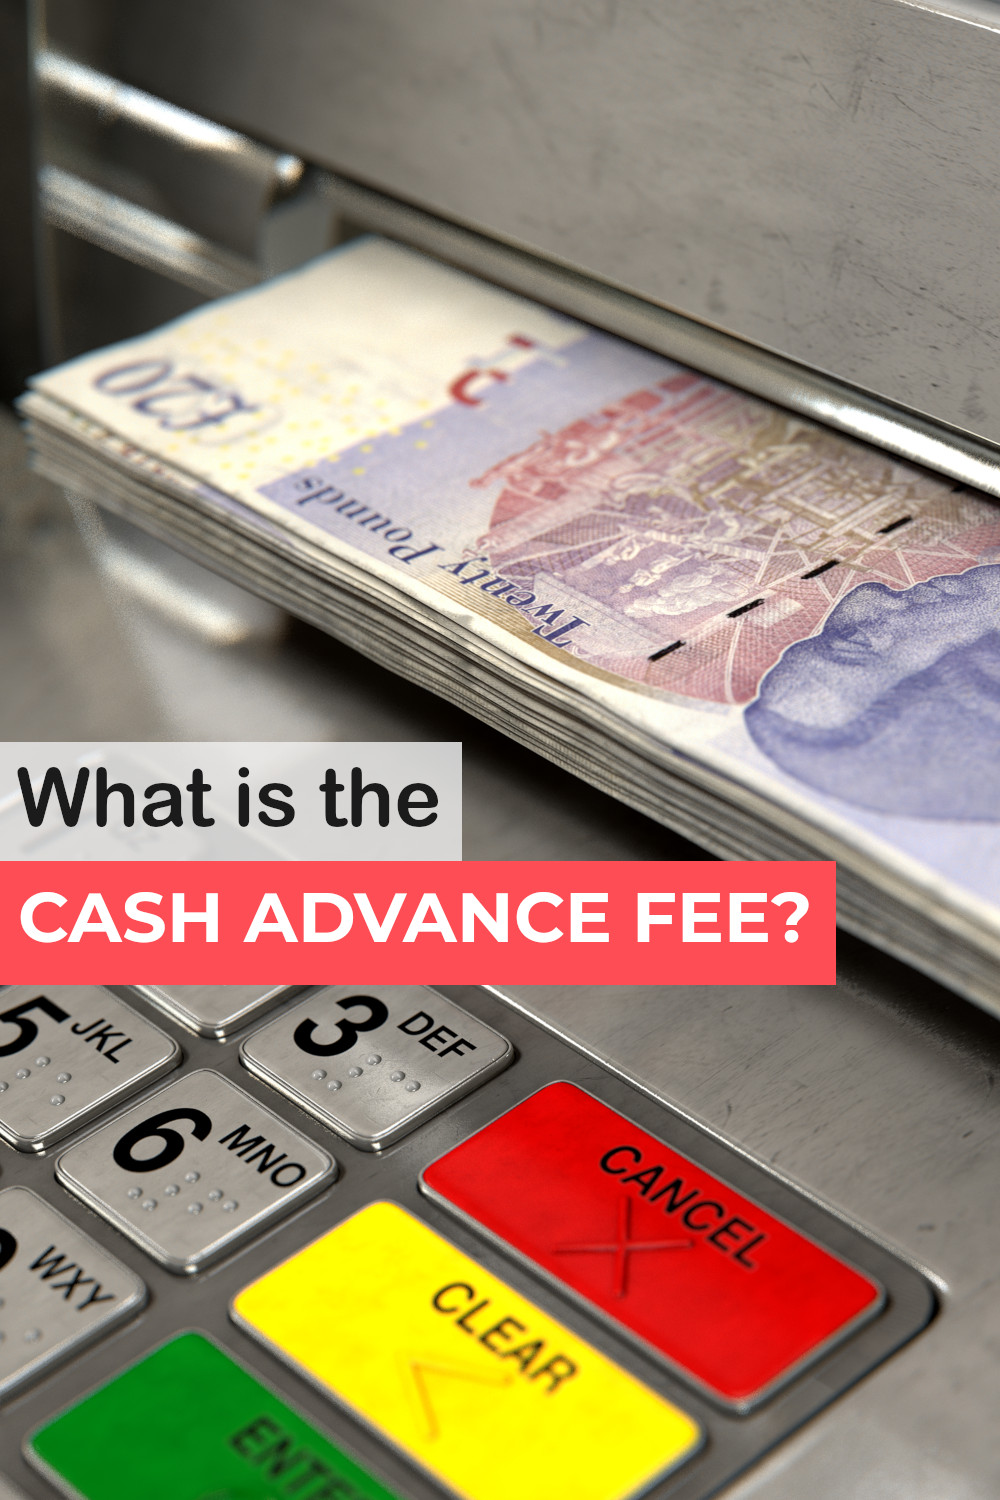 What is the credit card cash advance fee - full guide on how much it is, when it is charged and how to avoid it.